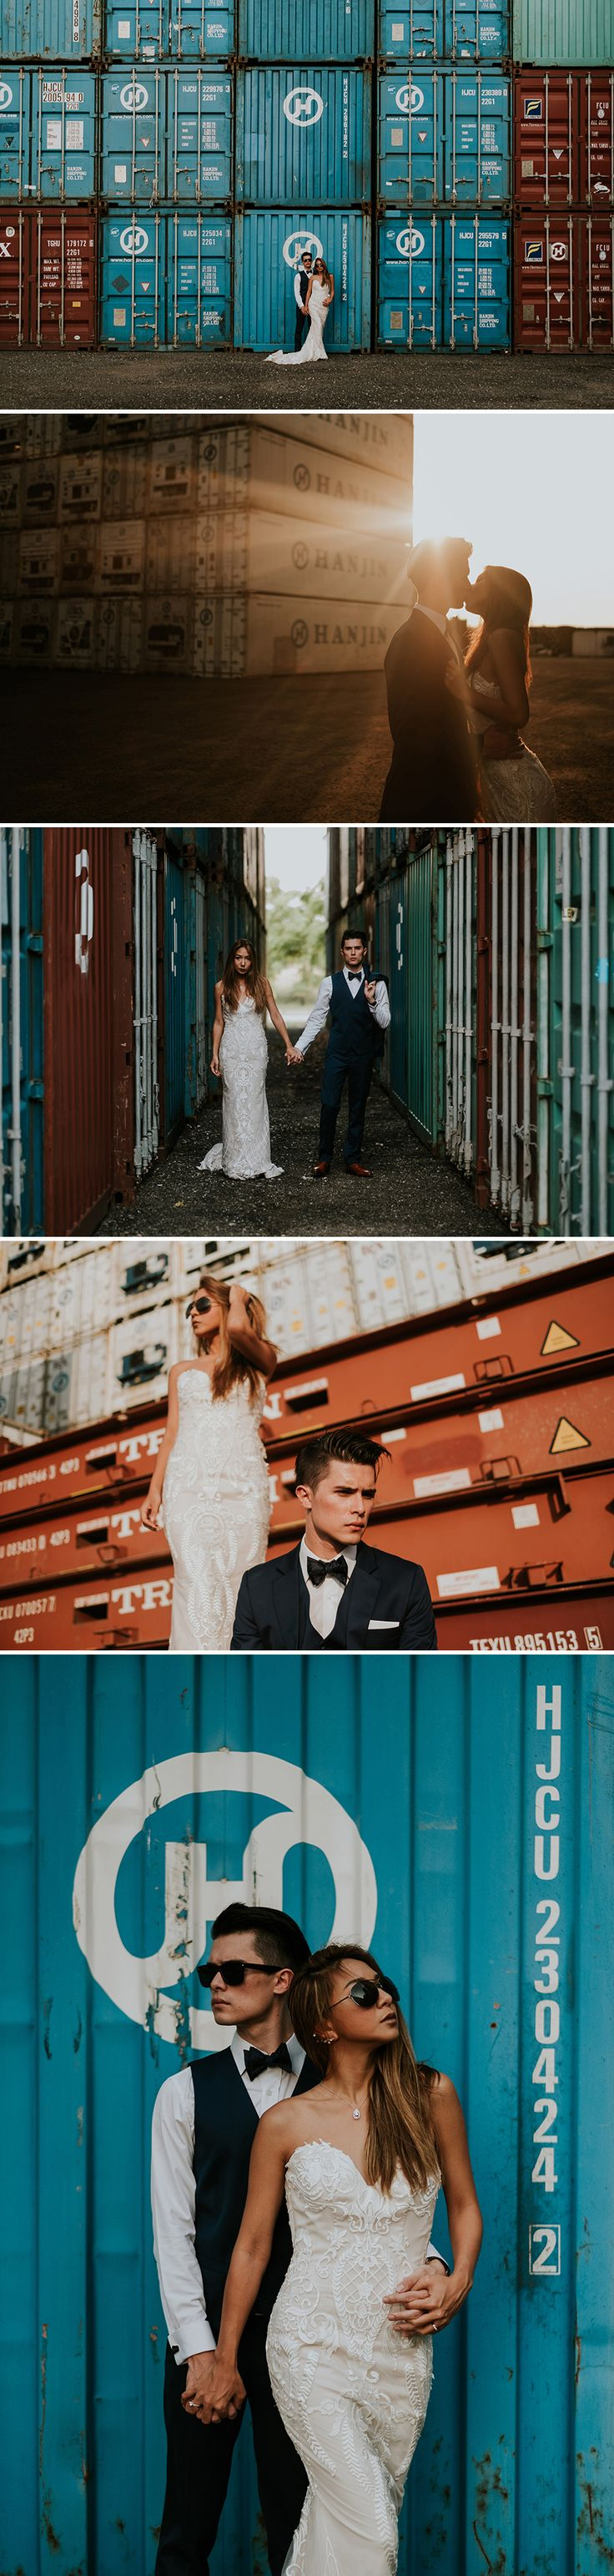 Shipyard as backdrop for lovely engagement shoot // Lady luck was on the side of newlyweds Joshua, Cheryl and their photographer Joseph of Super Panda Presents as they stumbled upon a gritty shipping container yard while driving around Tuas. The result is a series of photos which juxtapose a gorgeously groomed couple with a setting that's a little tough and rough around the edges. Brilliant!